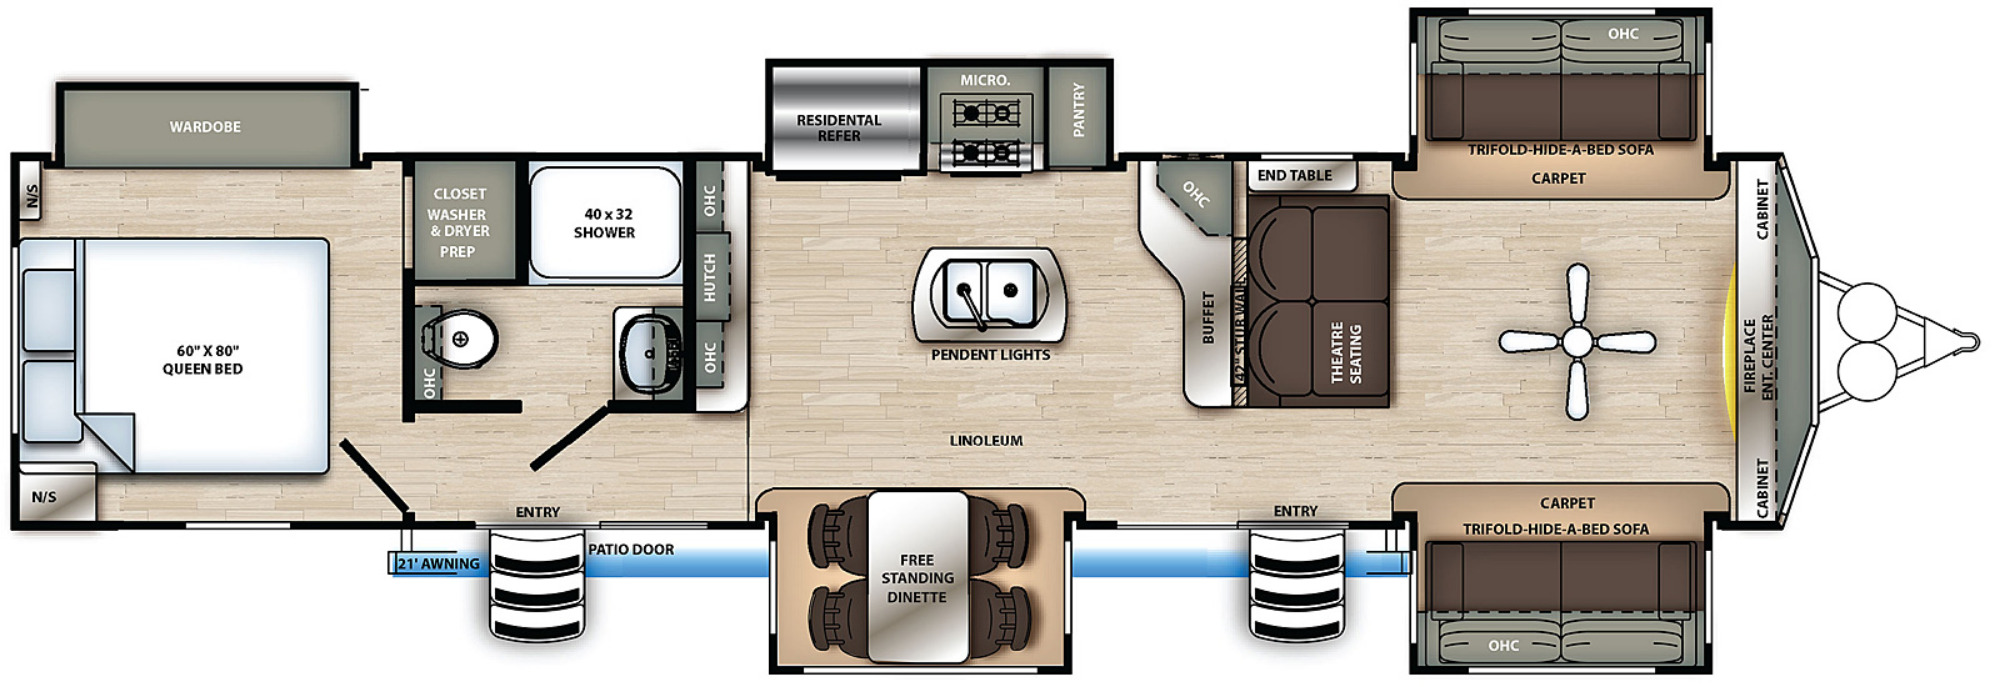 View Floor Plan for 2021 FOREST RIVER SANDPIPER 420FL